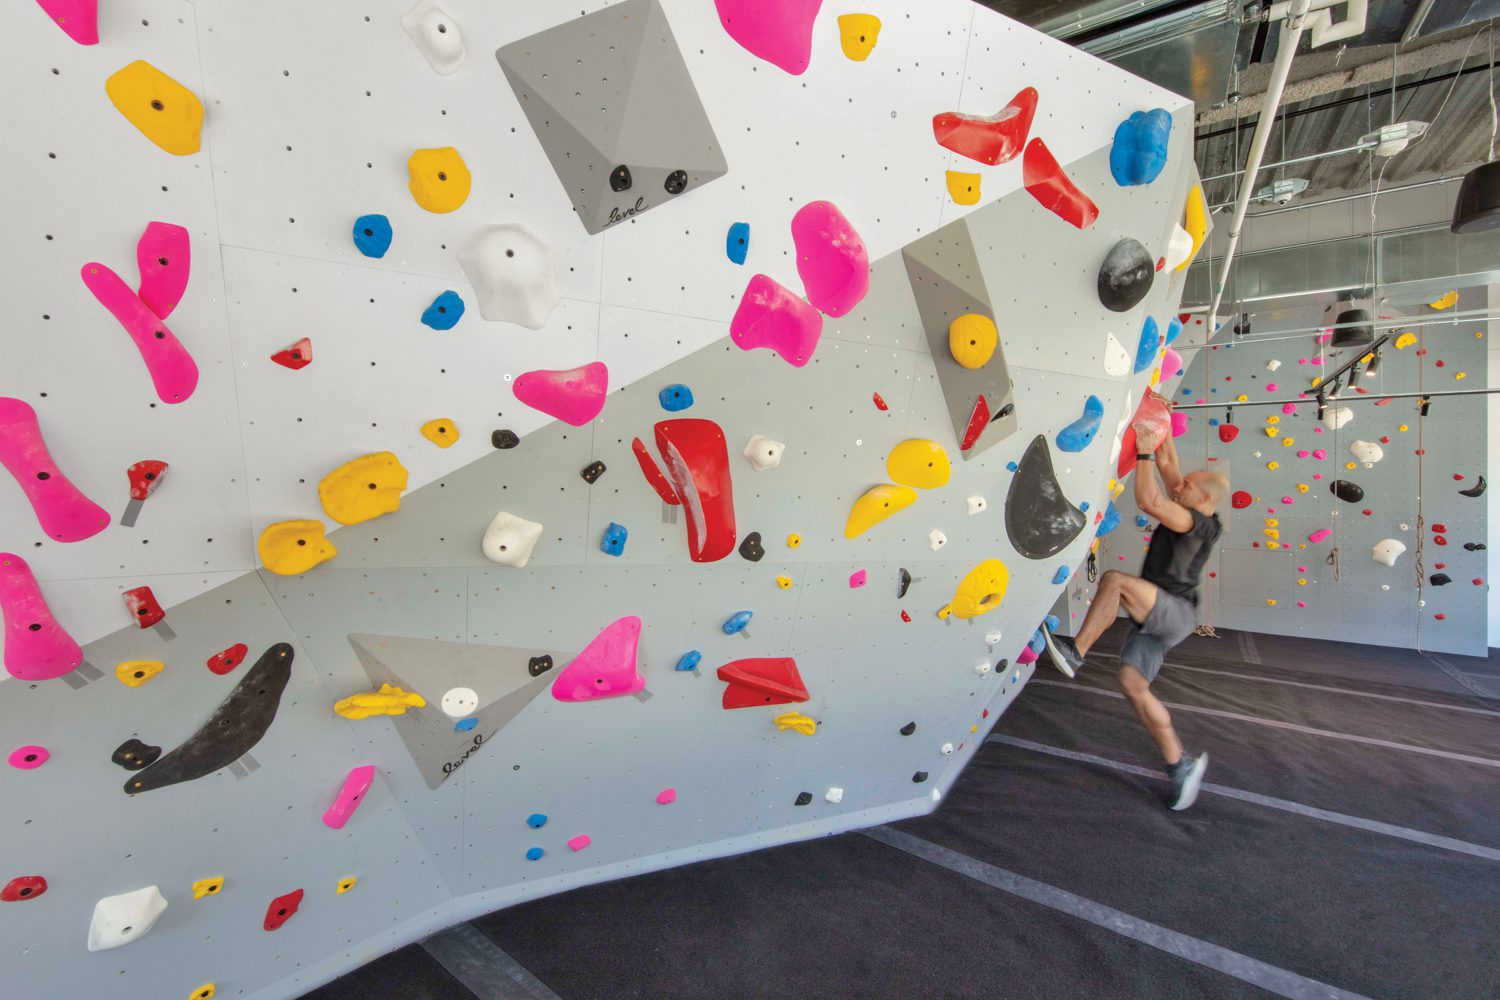 In the fitness center at the VF Corporation headquarters in Denver, Rapt Studio installed a 26-foot-tall climbing wall.